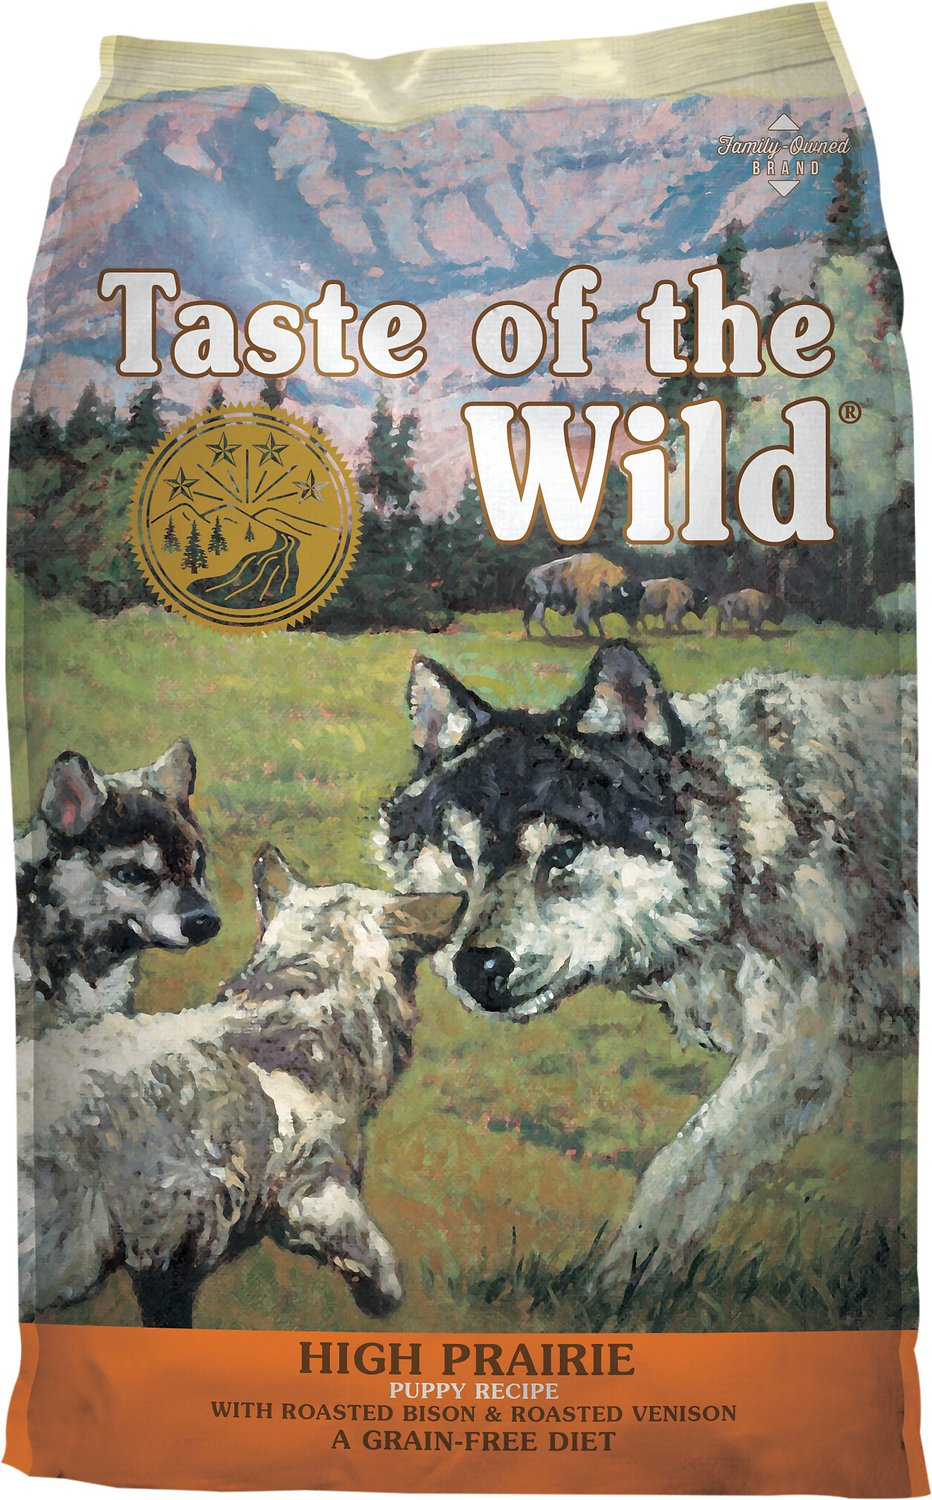 Taste of the Wild High Prairie Puppy Formula Grain-Free Dry Dog Food, 14-lb